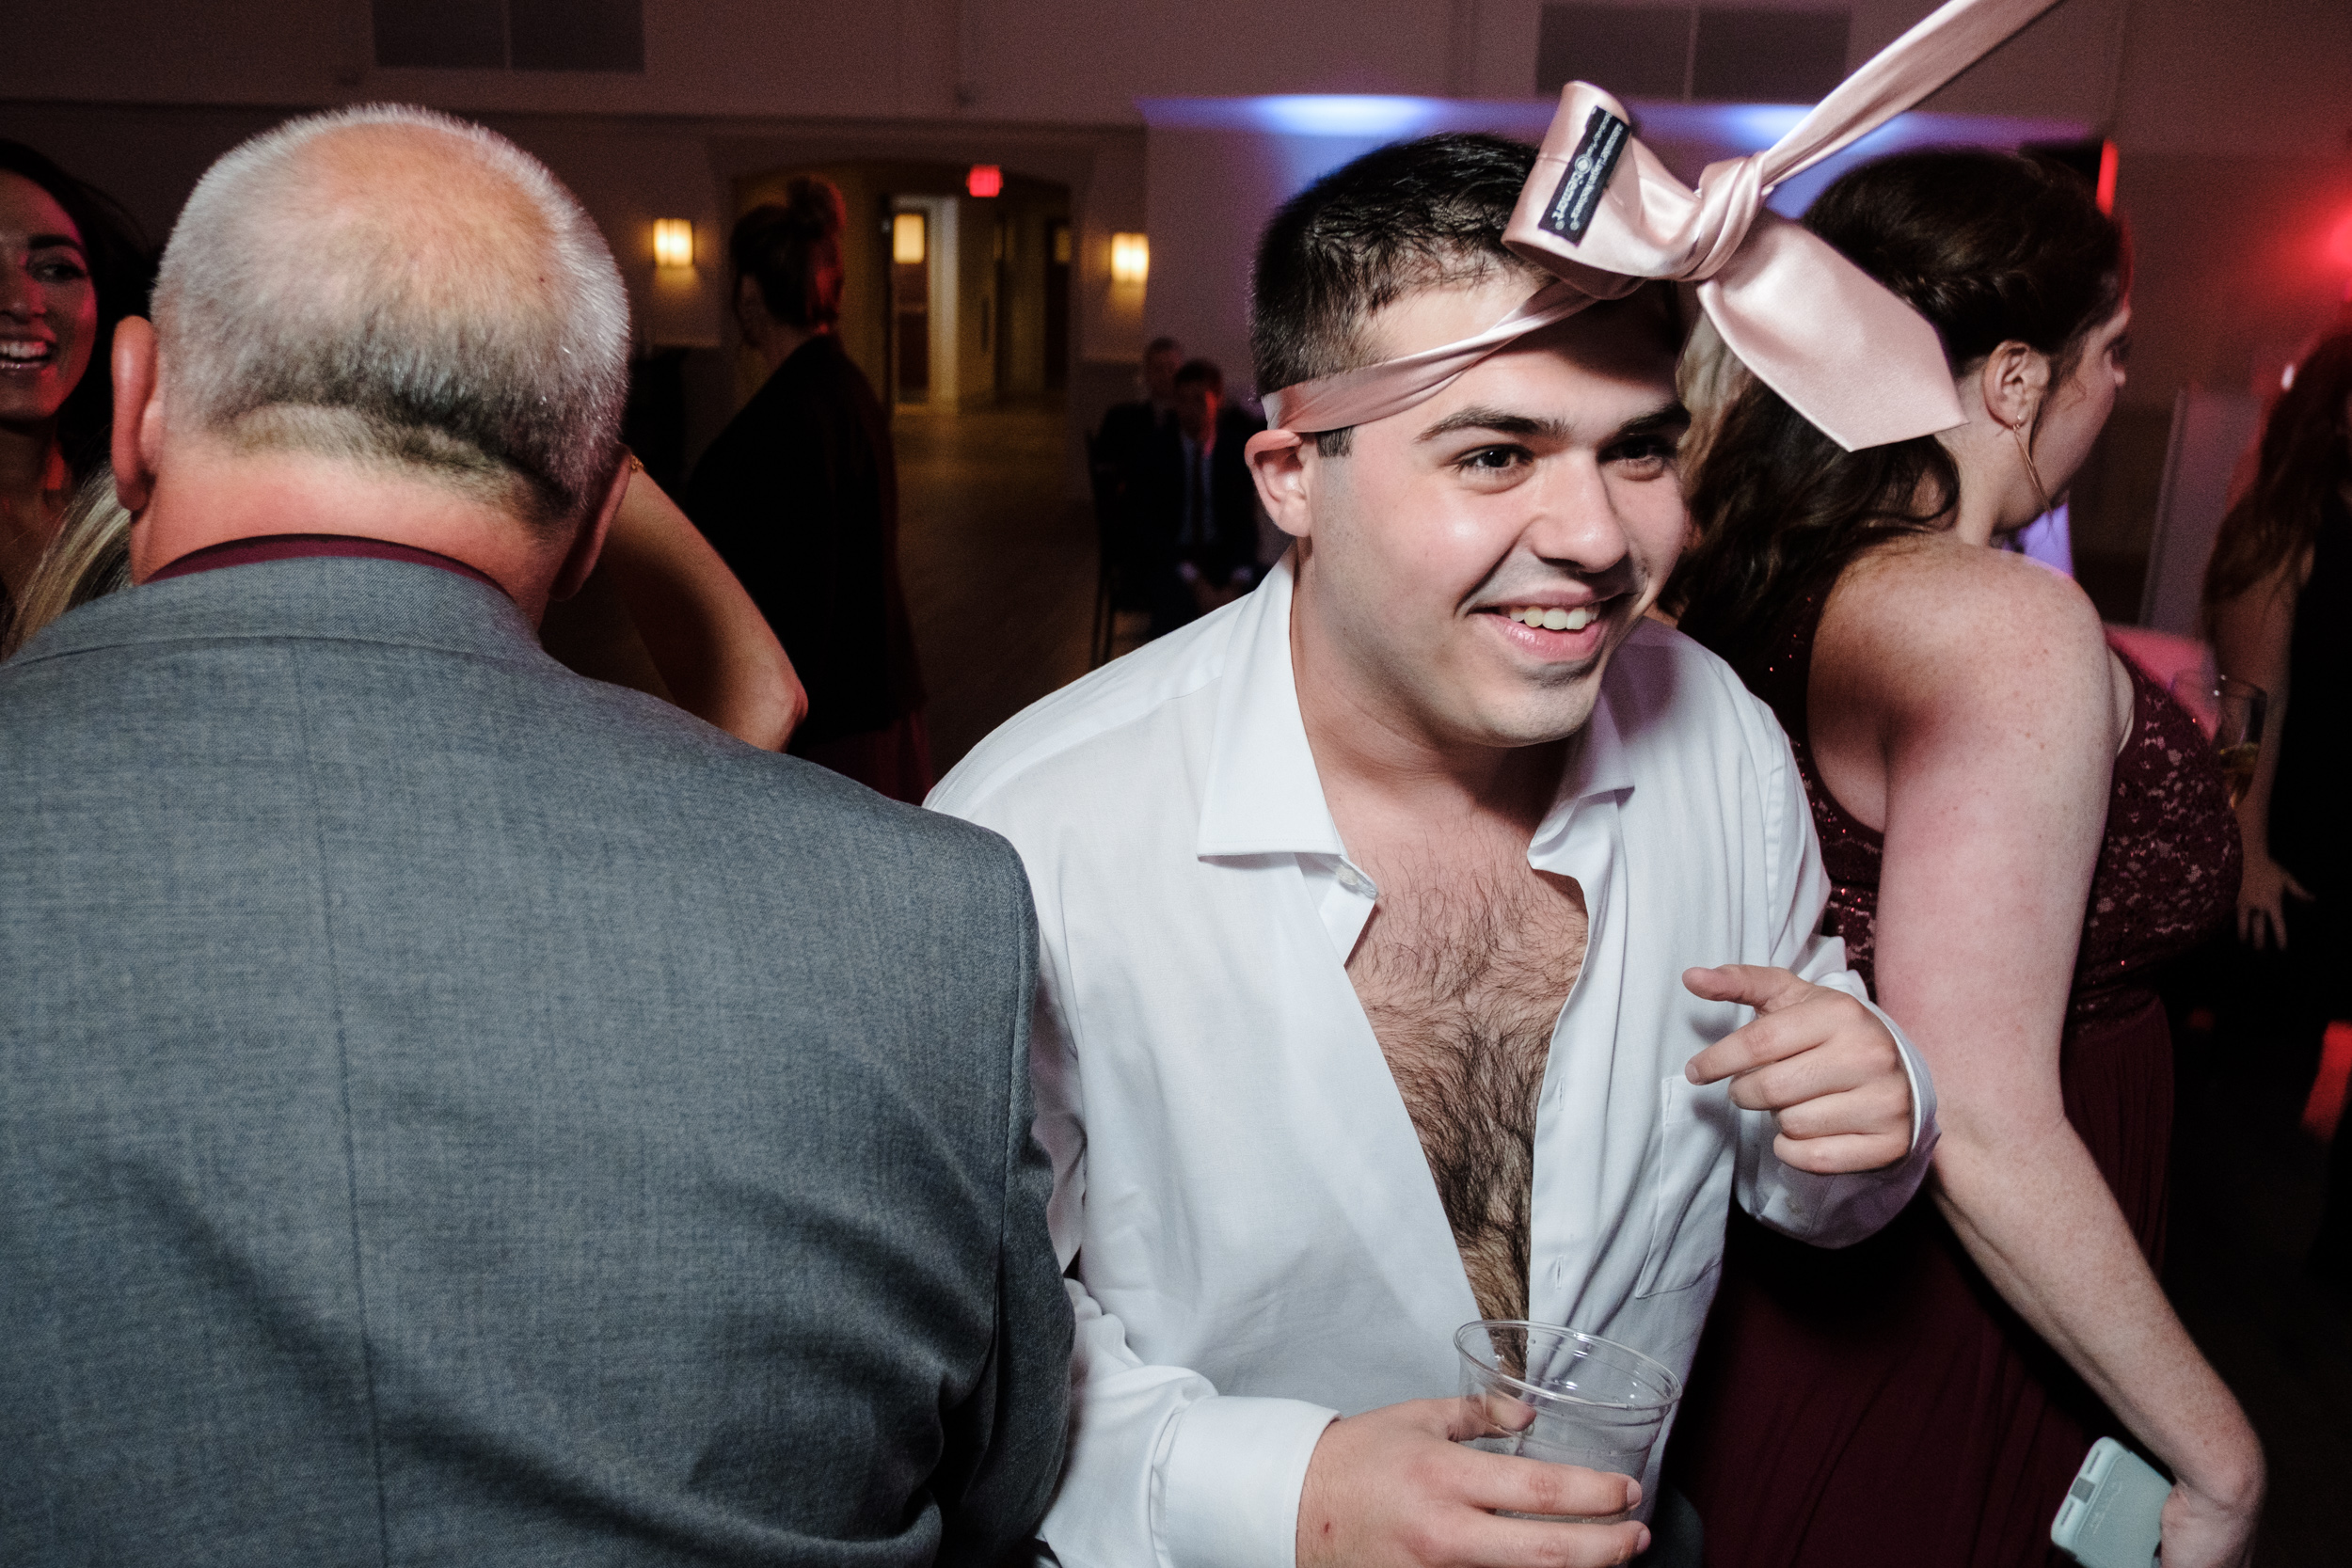 photographing the fun moments of your wedding reception